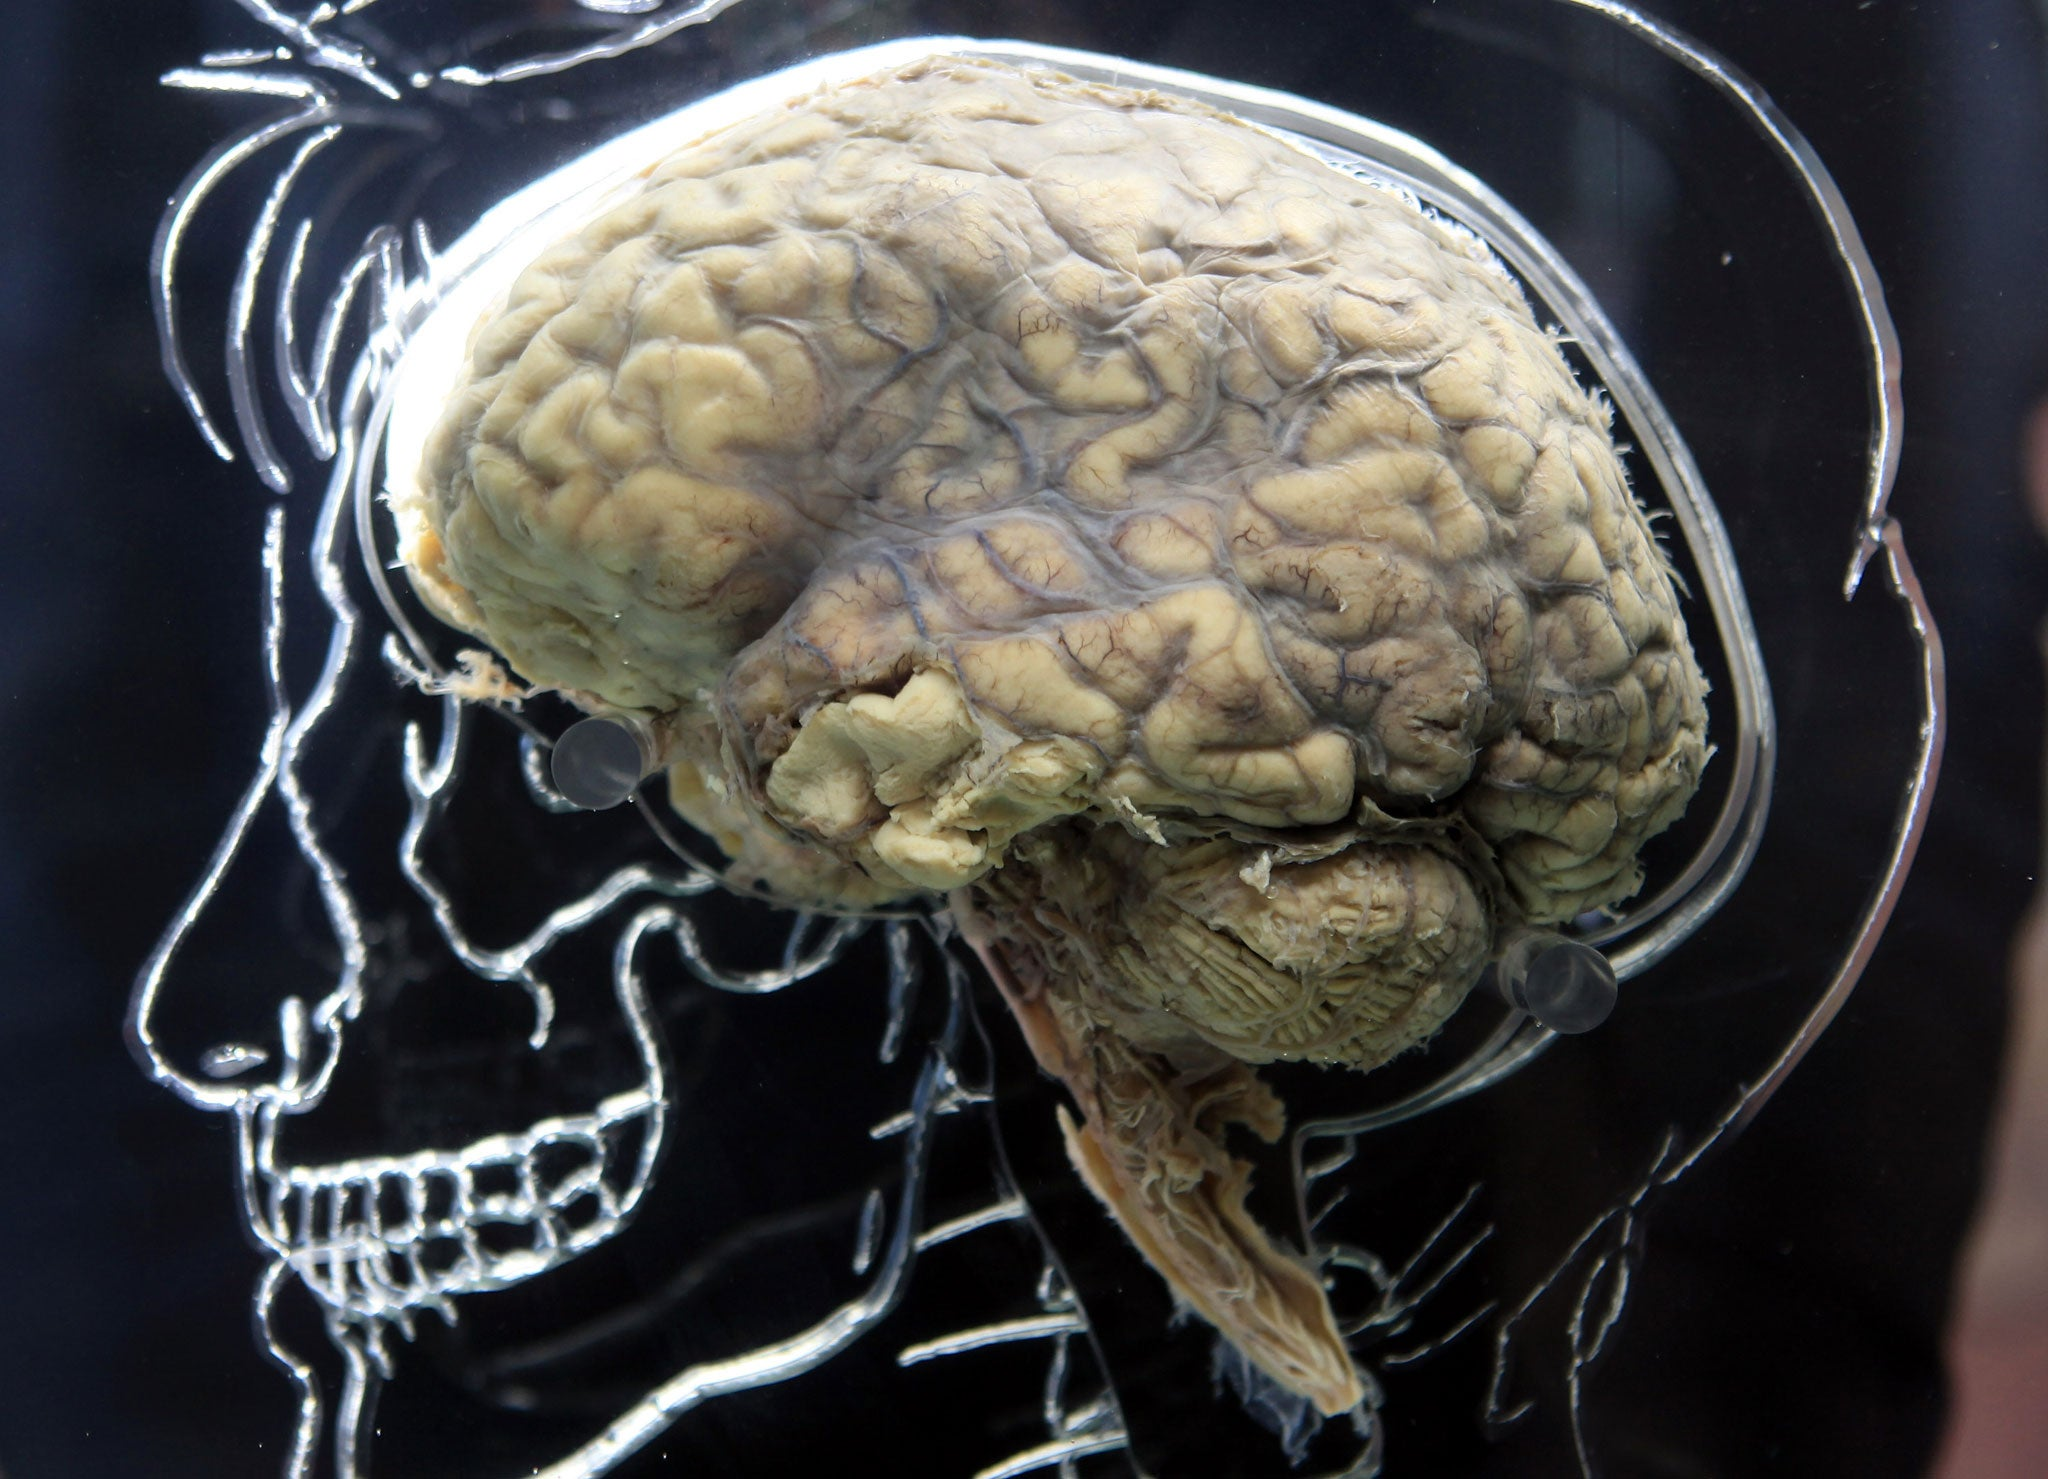 The Brain - latest news, breaking stories and comment - The Independent